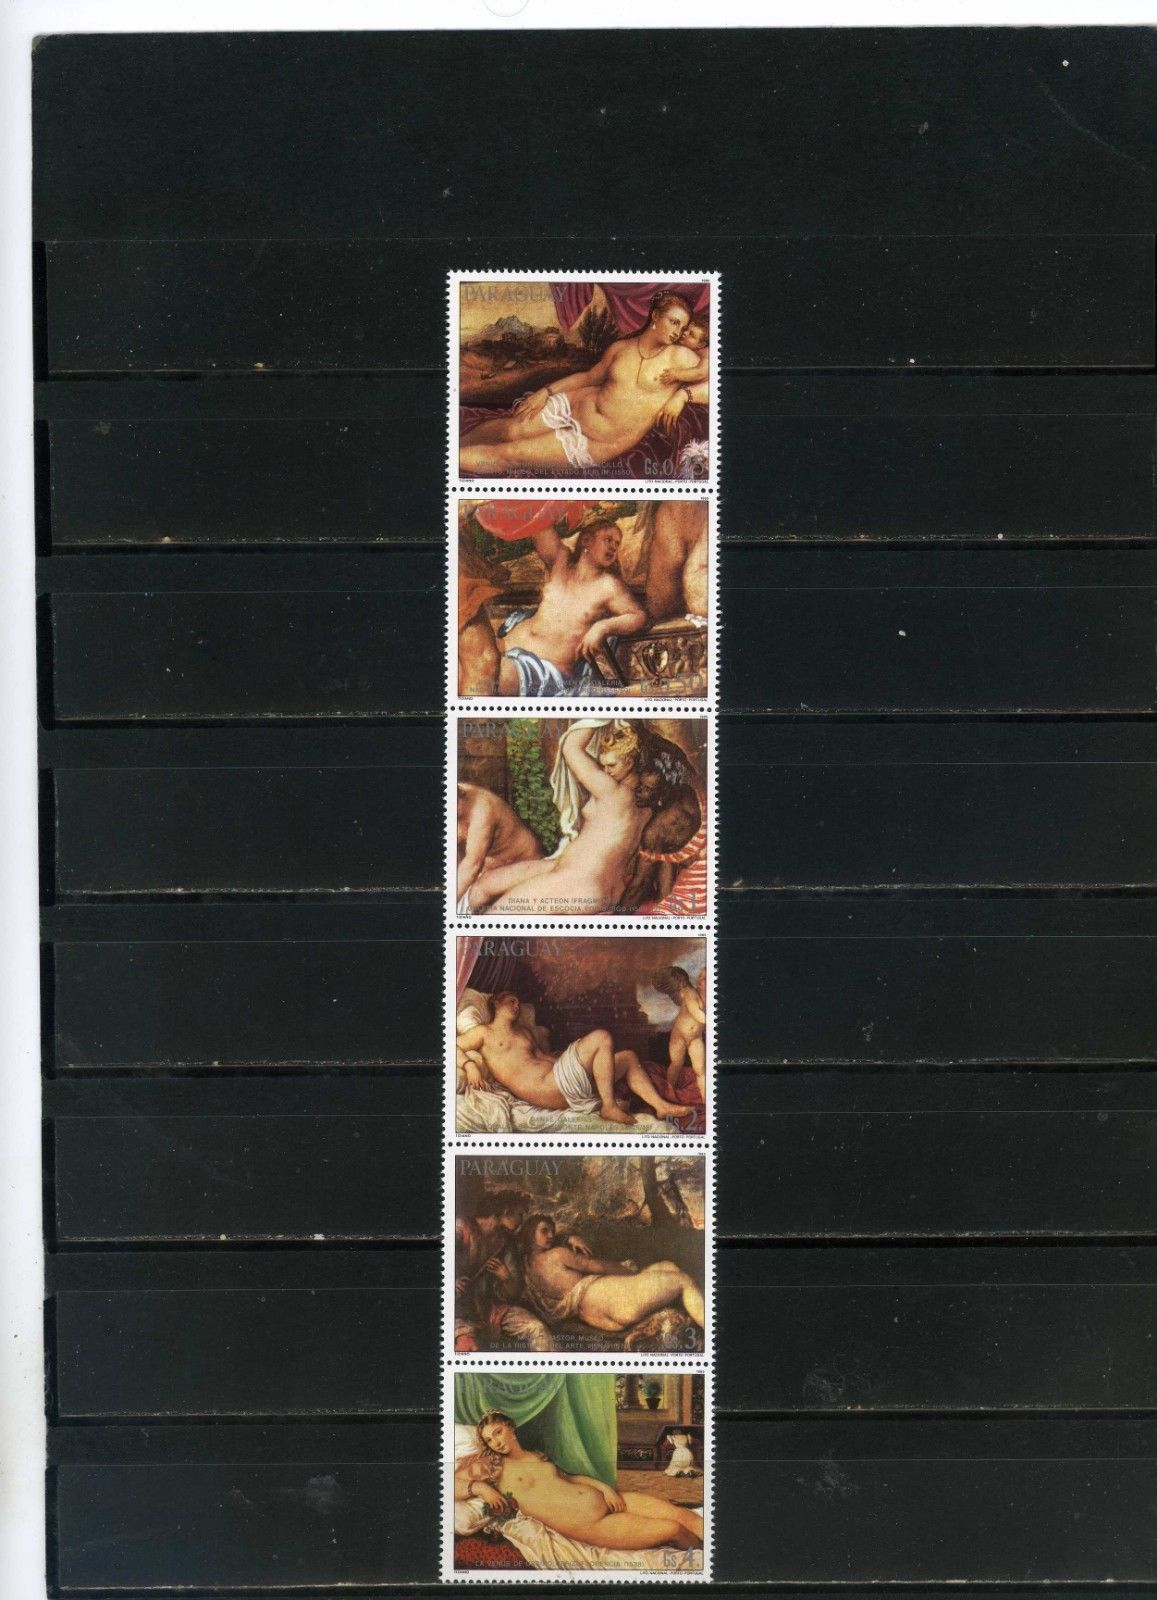 PARAGUAY 1986 Sc#2162 PAINTINGS BY TITIAN/NUDES STRIP OF 6